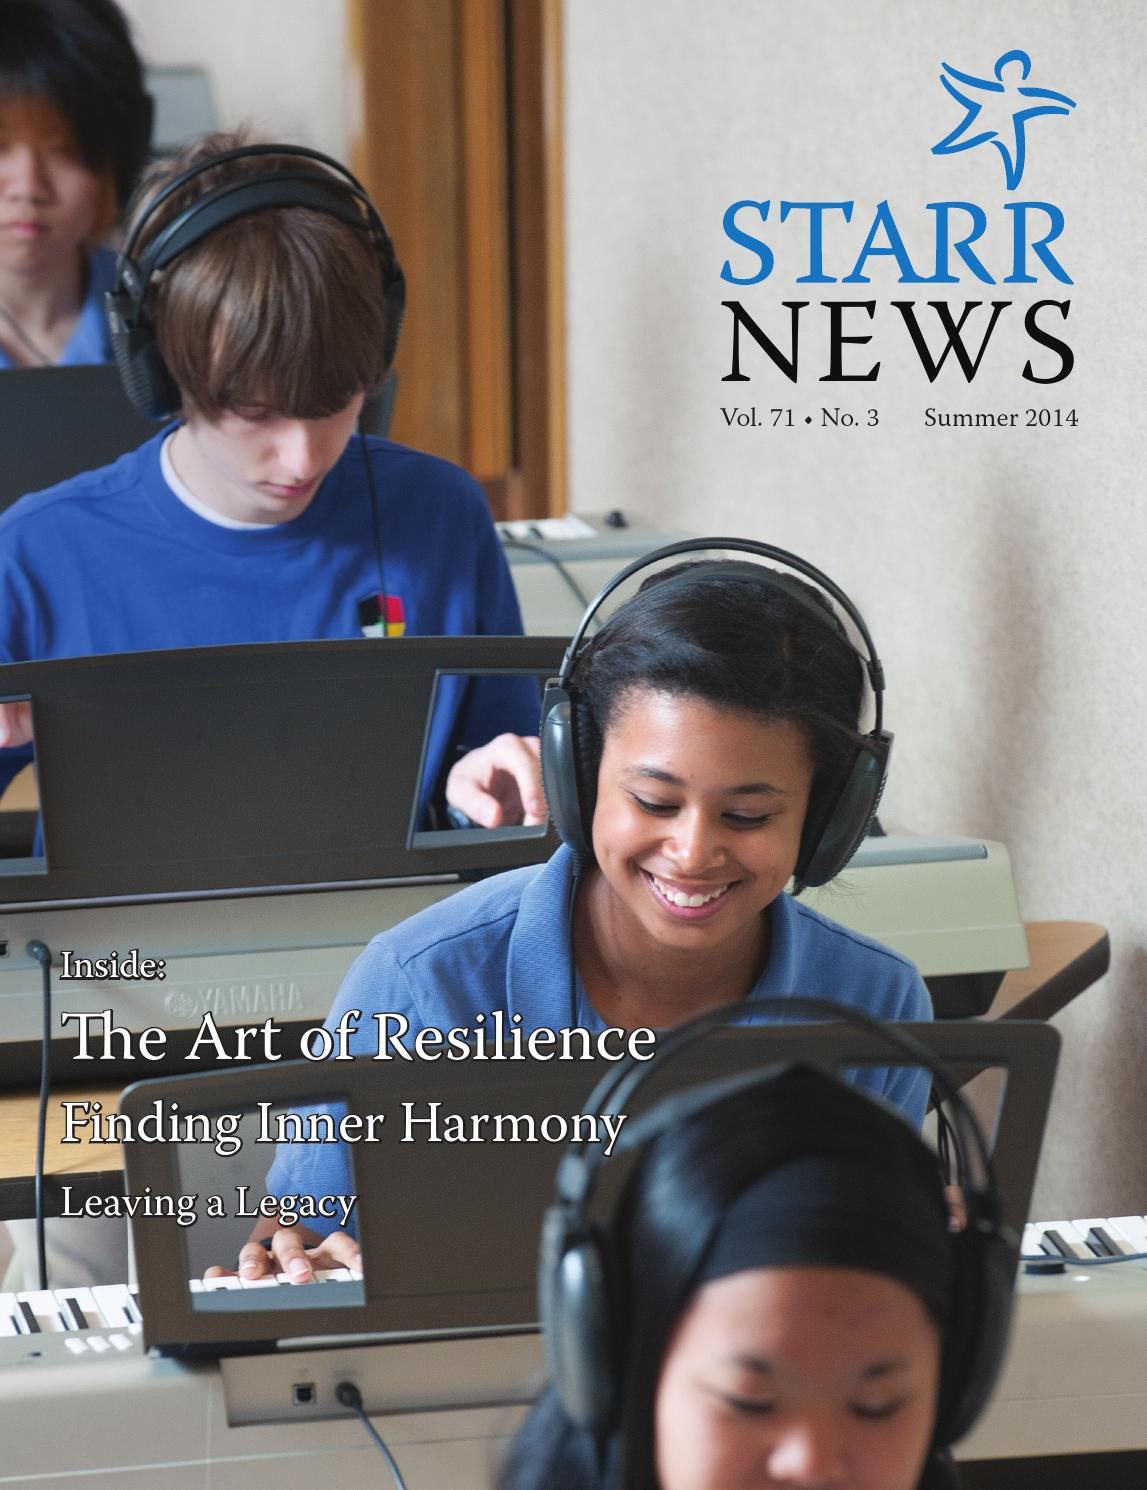 Starr News Summer 2014 By Starr Commonwealth Issuu